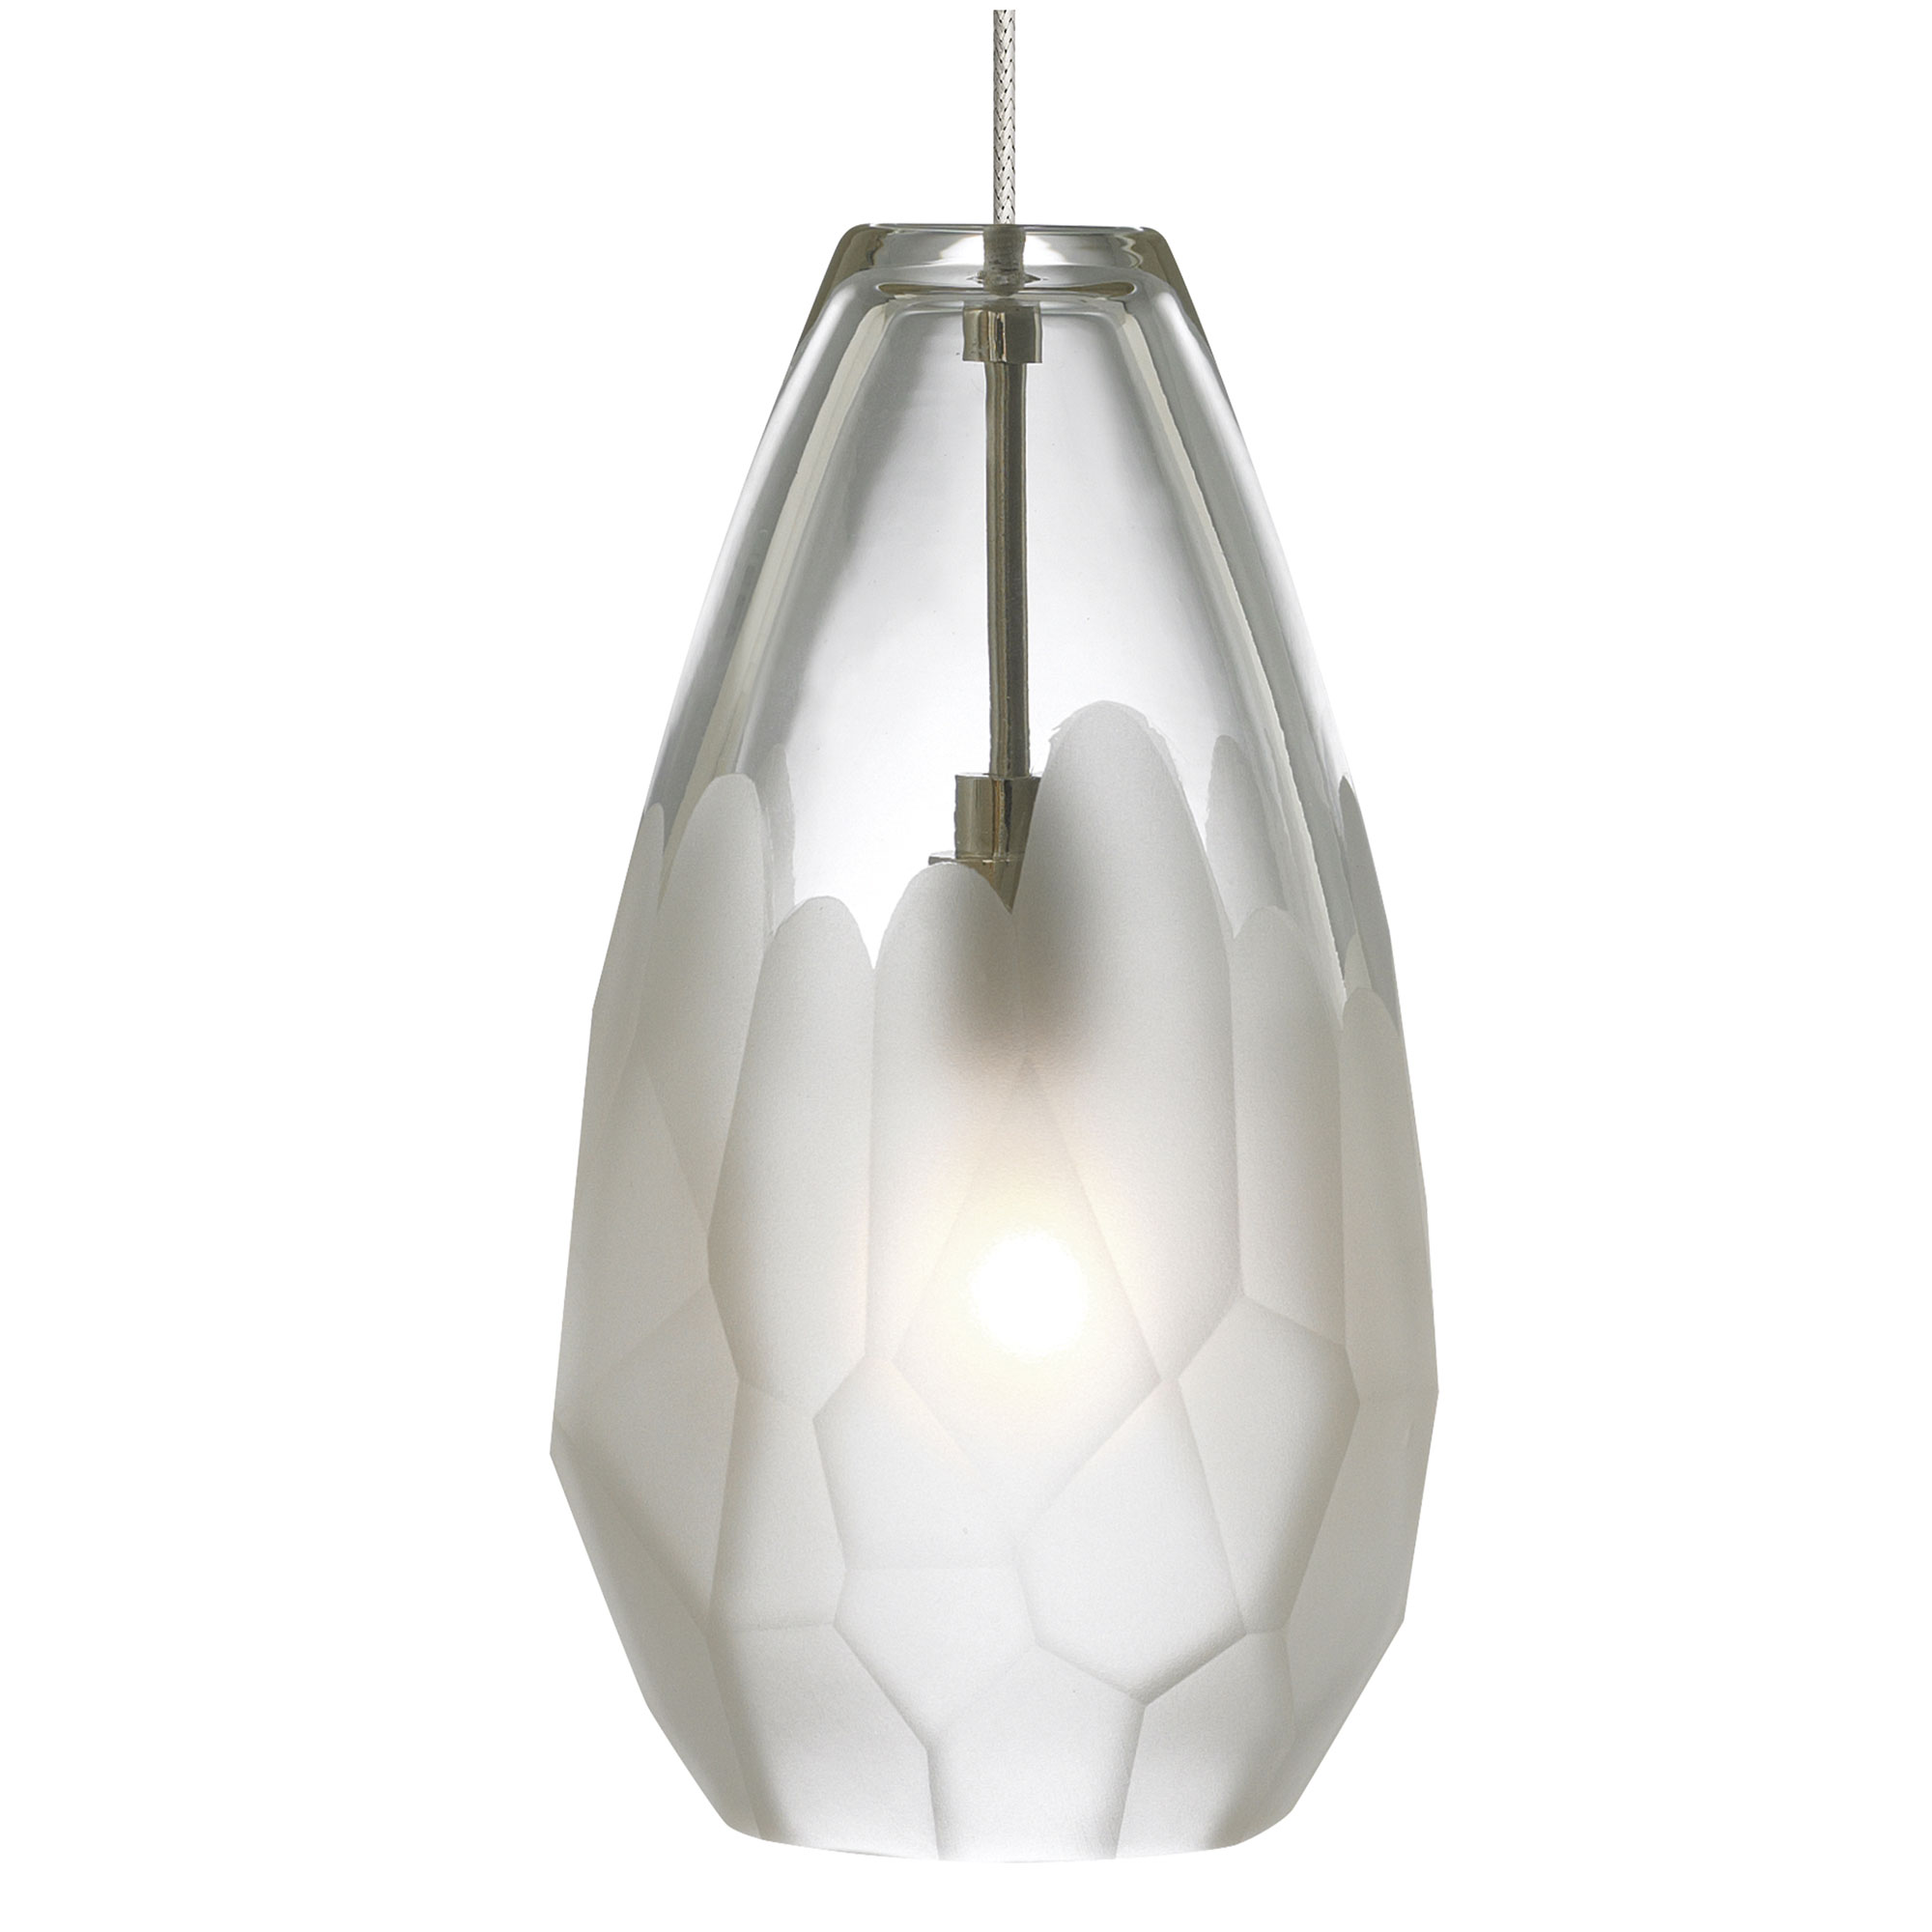 Briolette monopoint pendant by lbl lighting hs549frsc1bmpt